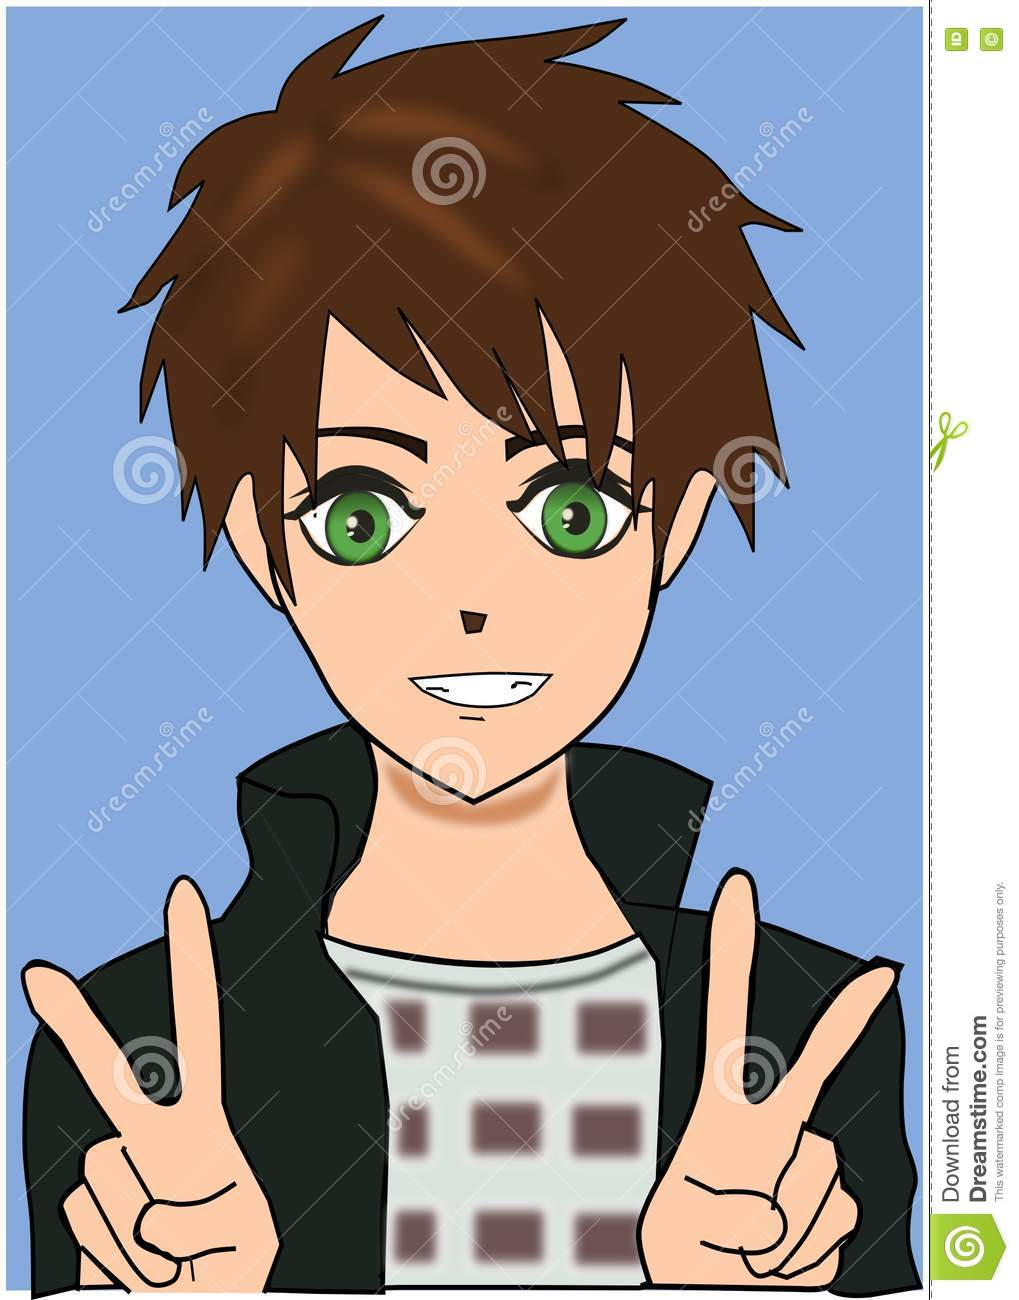 Cute smiling anime boy with beautiful green eyes and peace hand gestures wearing grey jacket on blue background